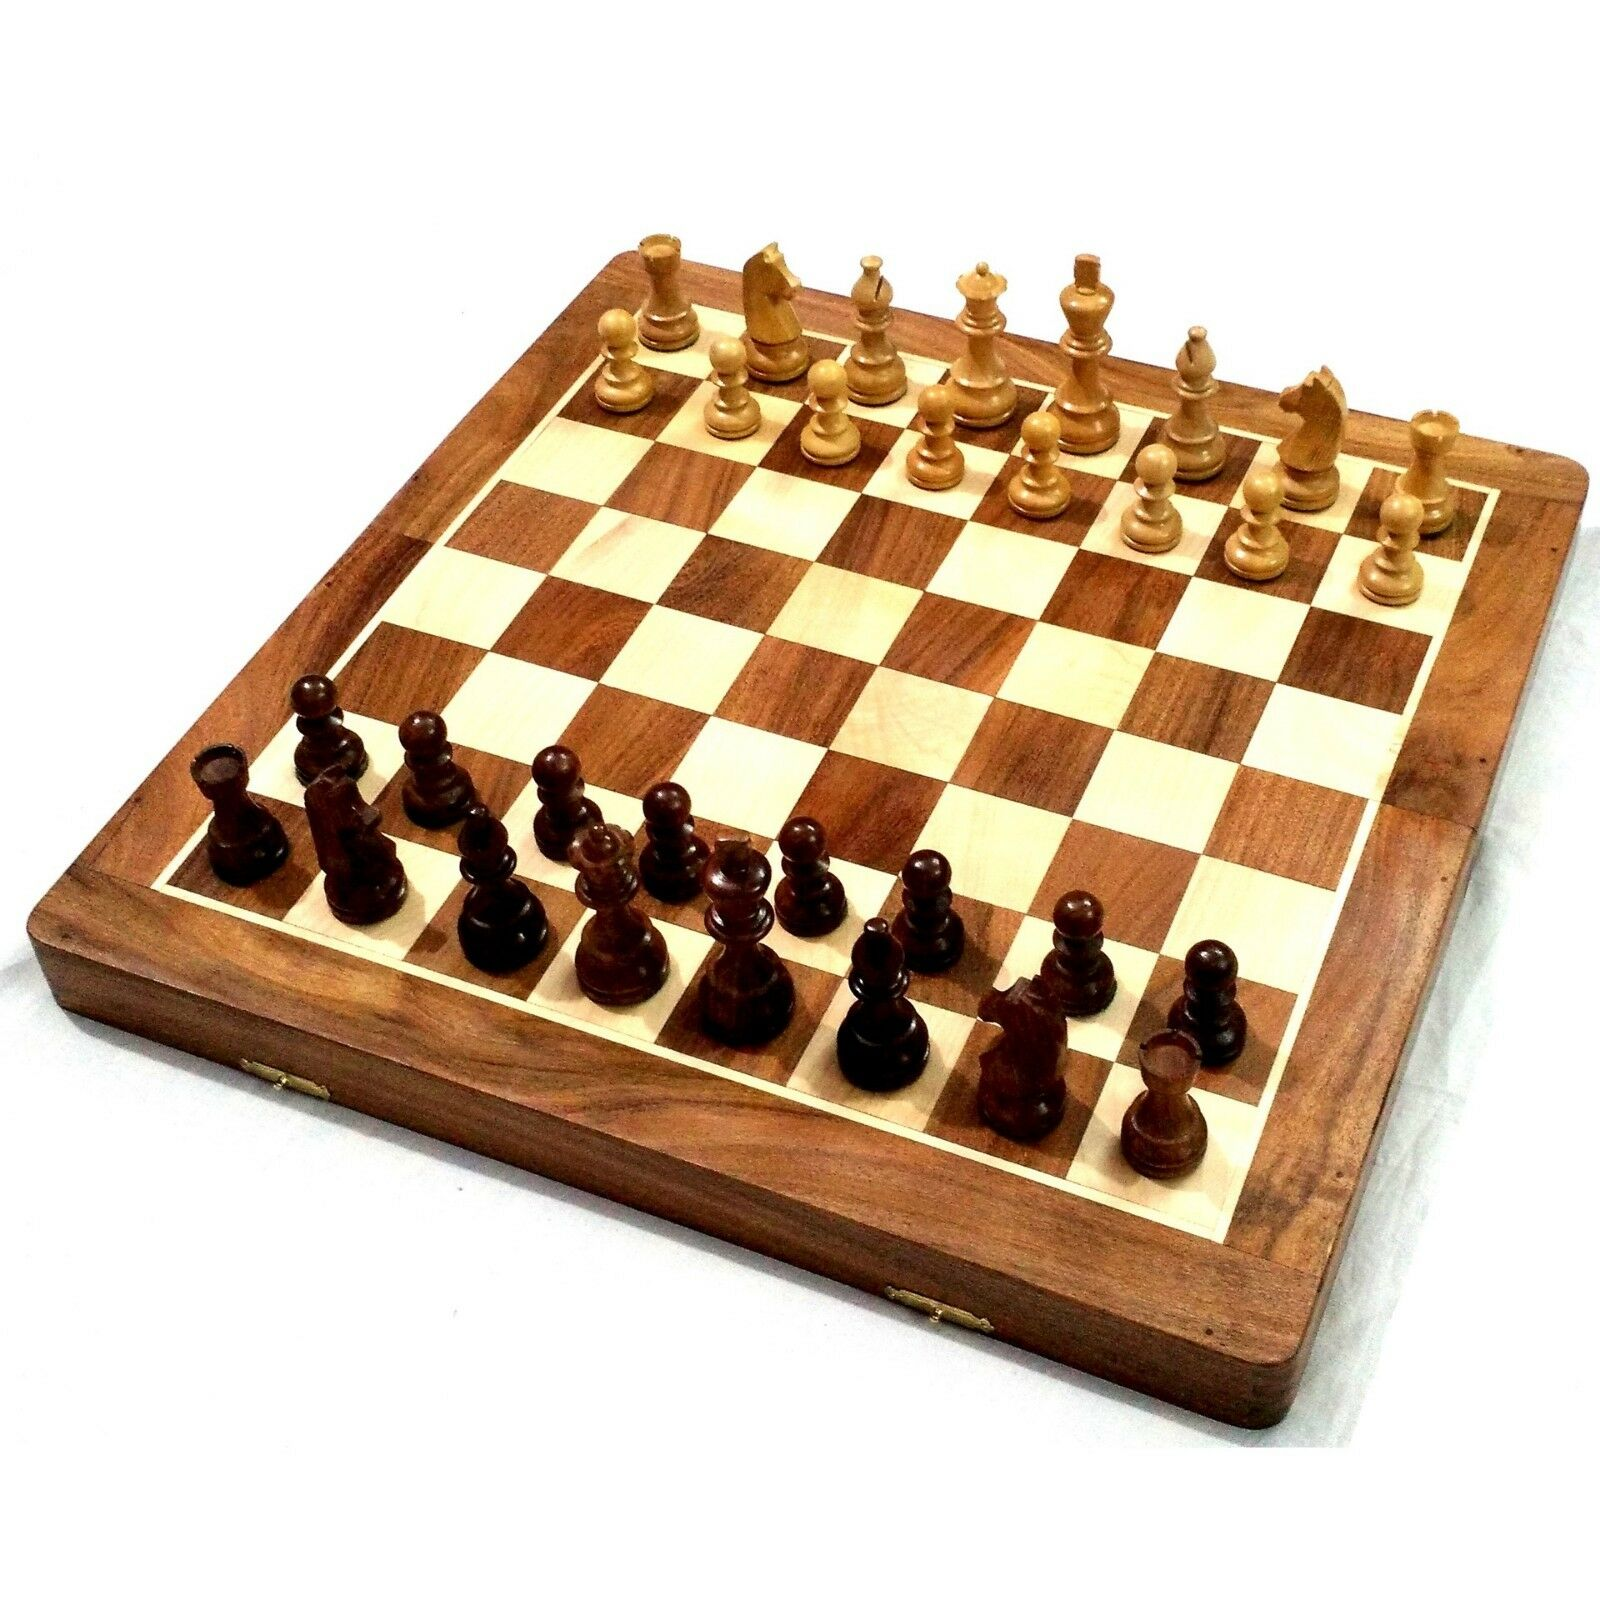 20  Very Large oren Rosewood & Maple Wooden Inlaid Chess Set Board for Travel